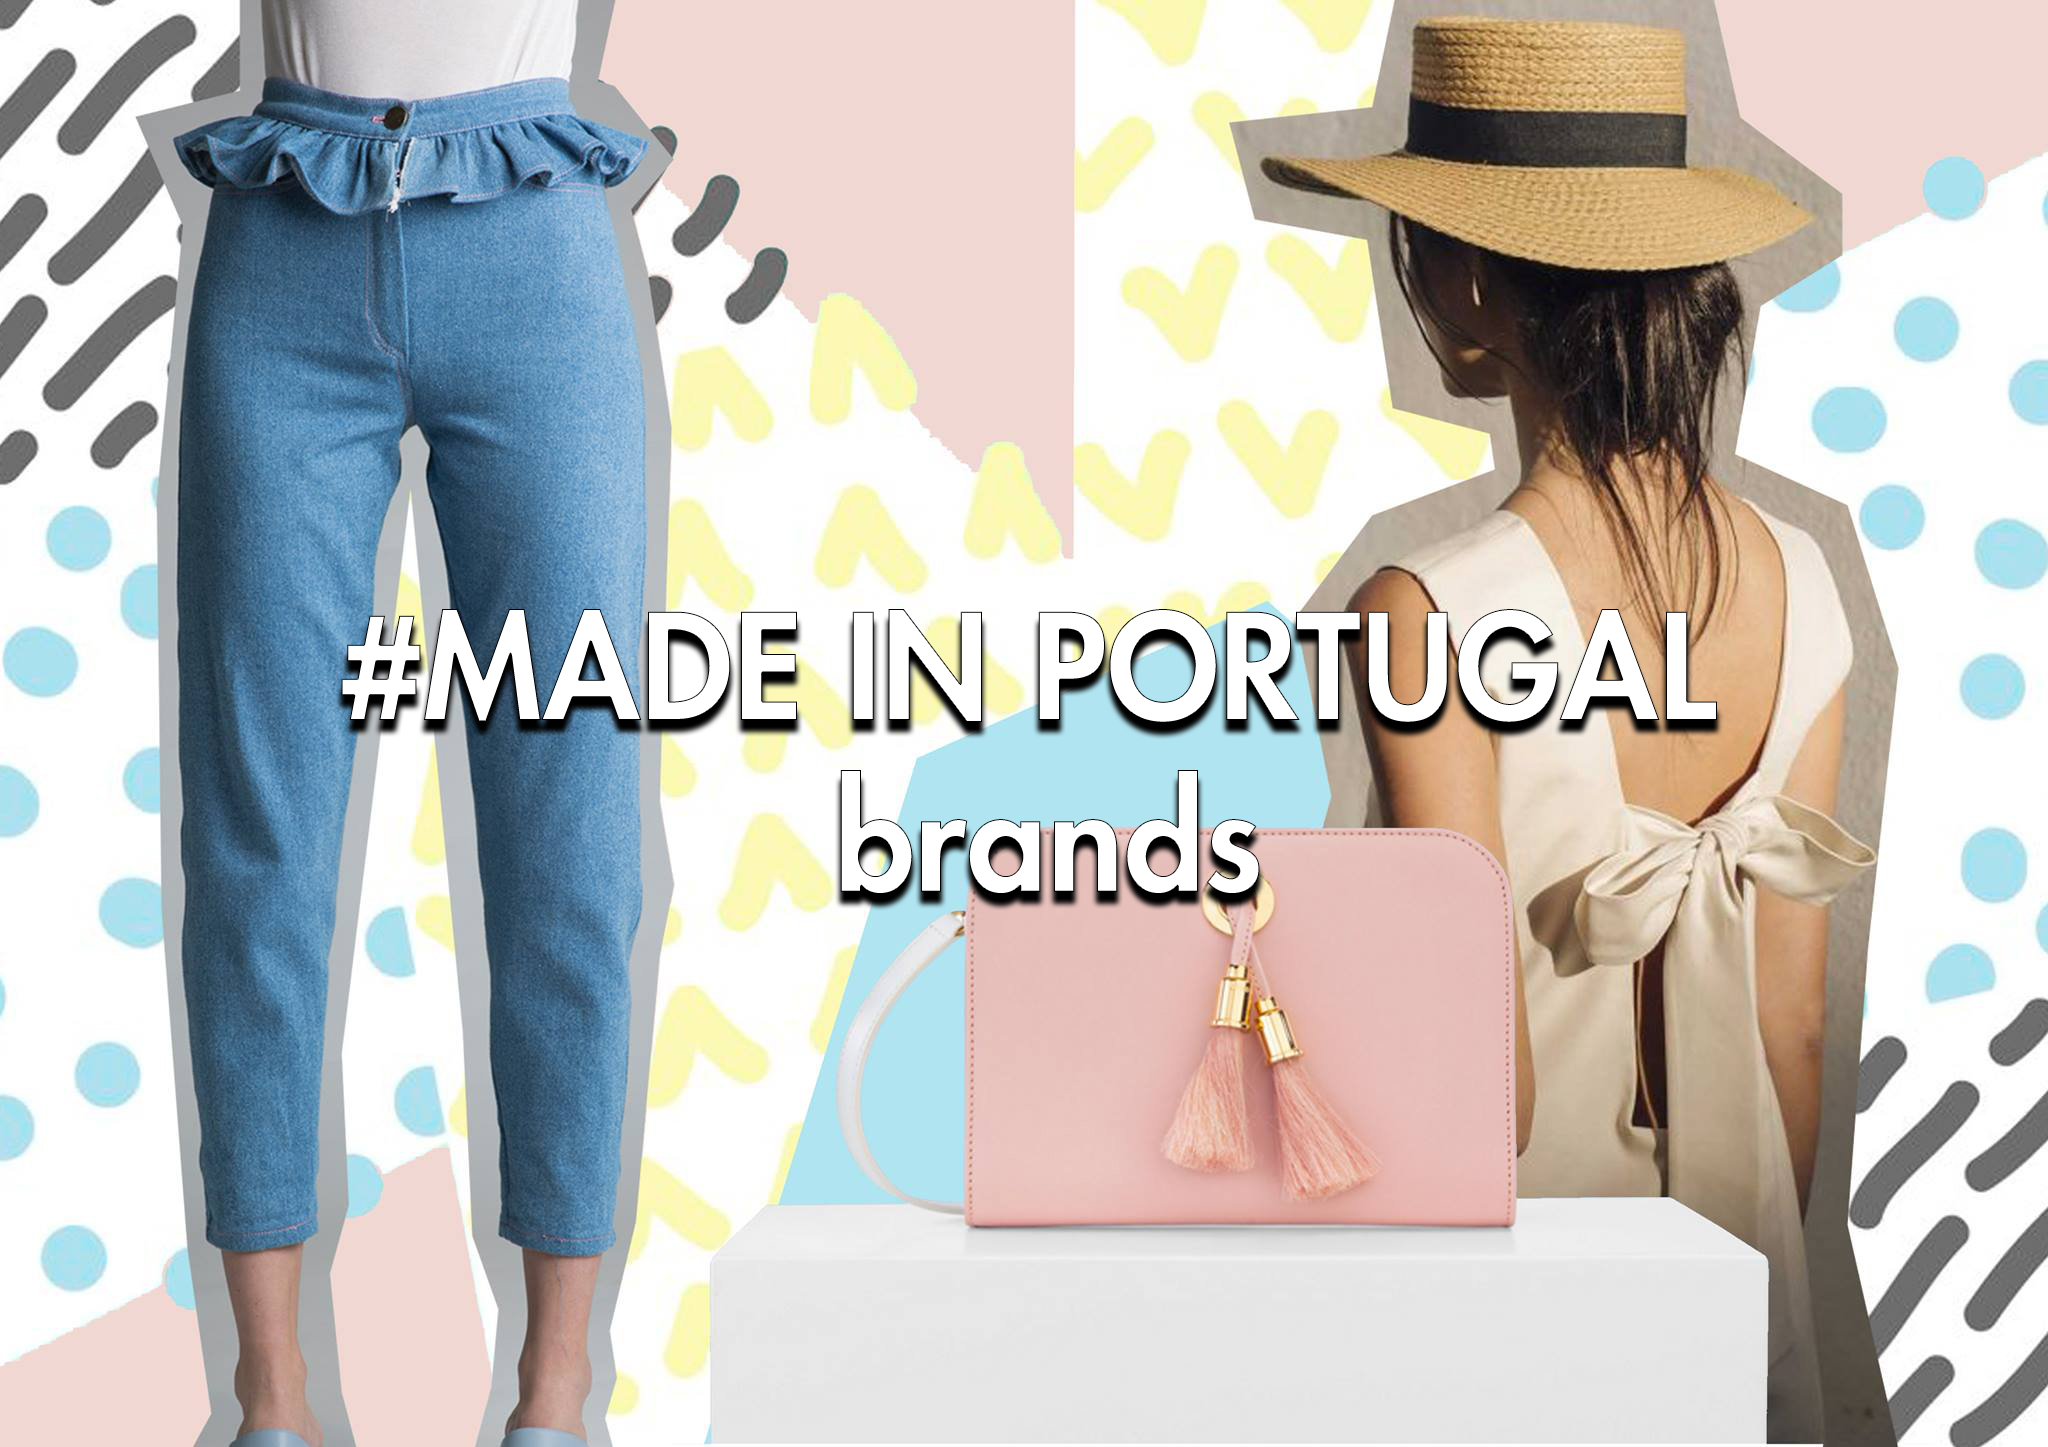 MADE-IN-PORTUGAL